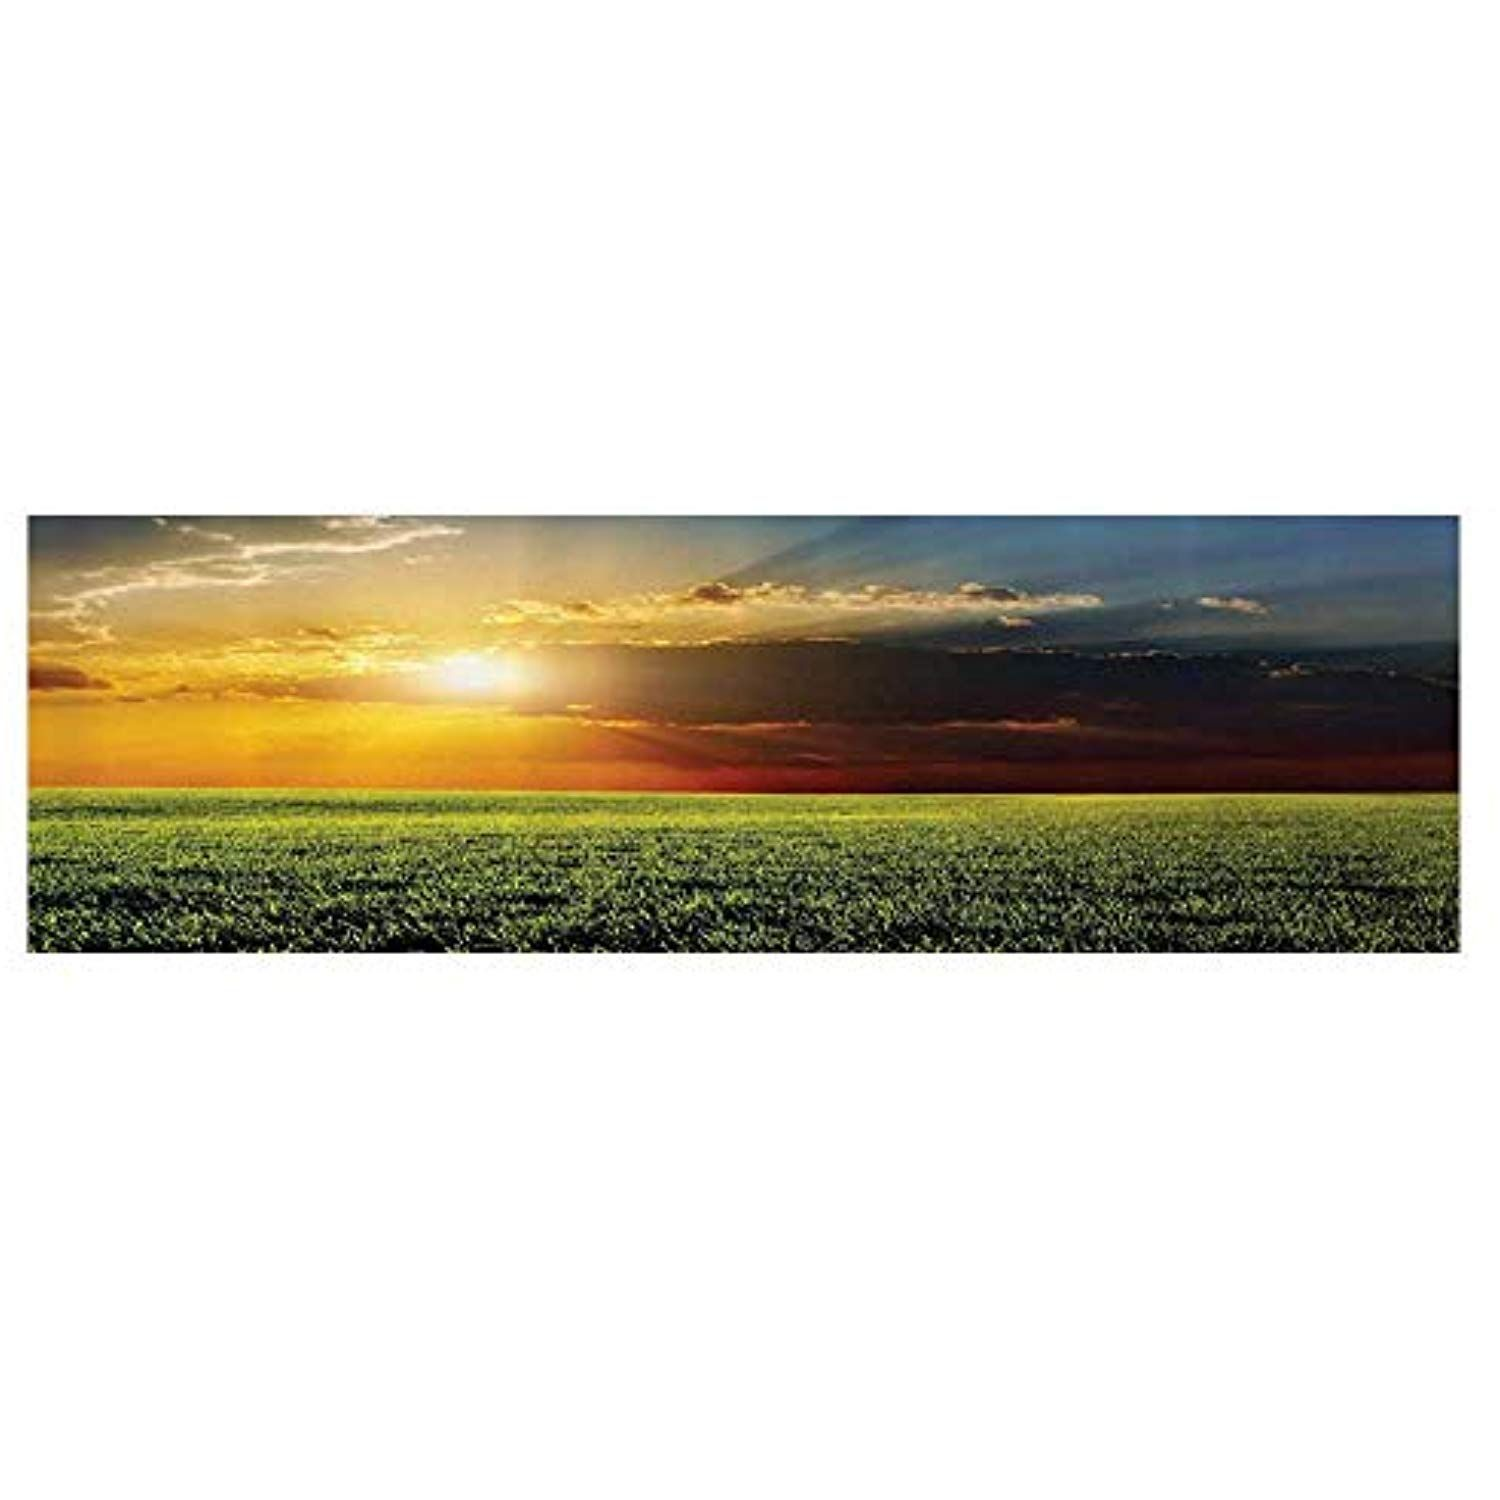 Auraise Heybee Fish Tank Background Dramatic Sunover Agricultural Field Sunams Bursting Through Dark Clouds Fish Tank B Cloud Fish Fish Tank Wallpaper Stickers